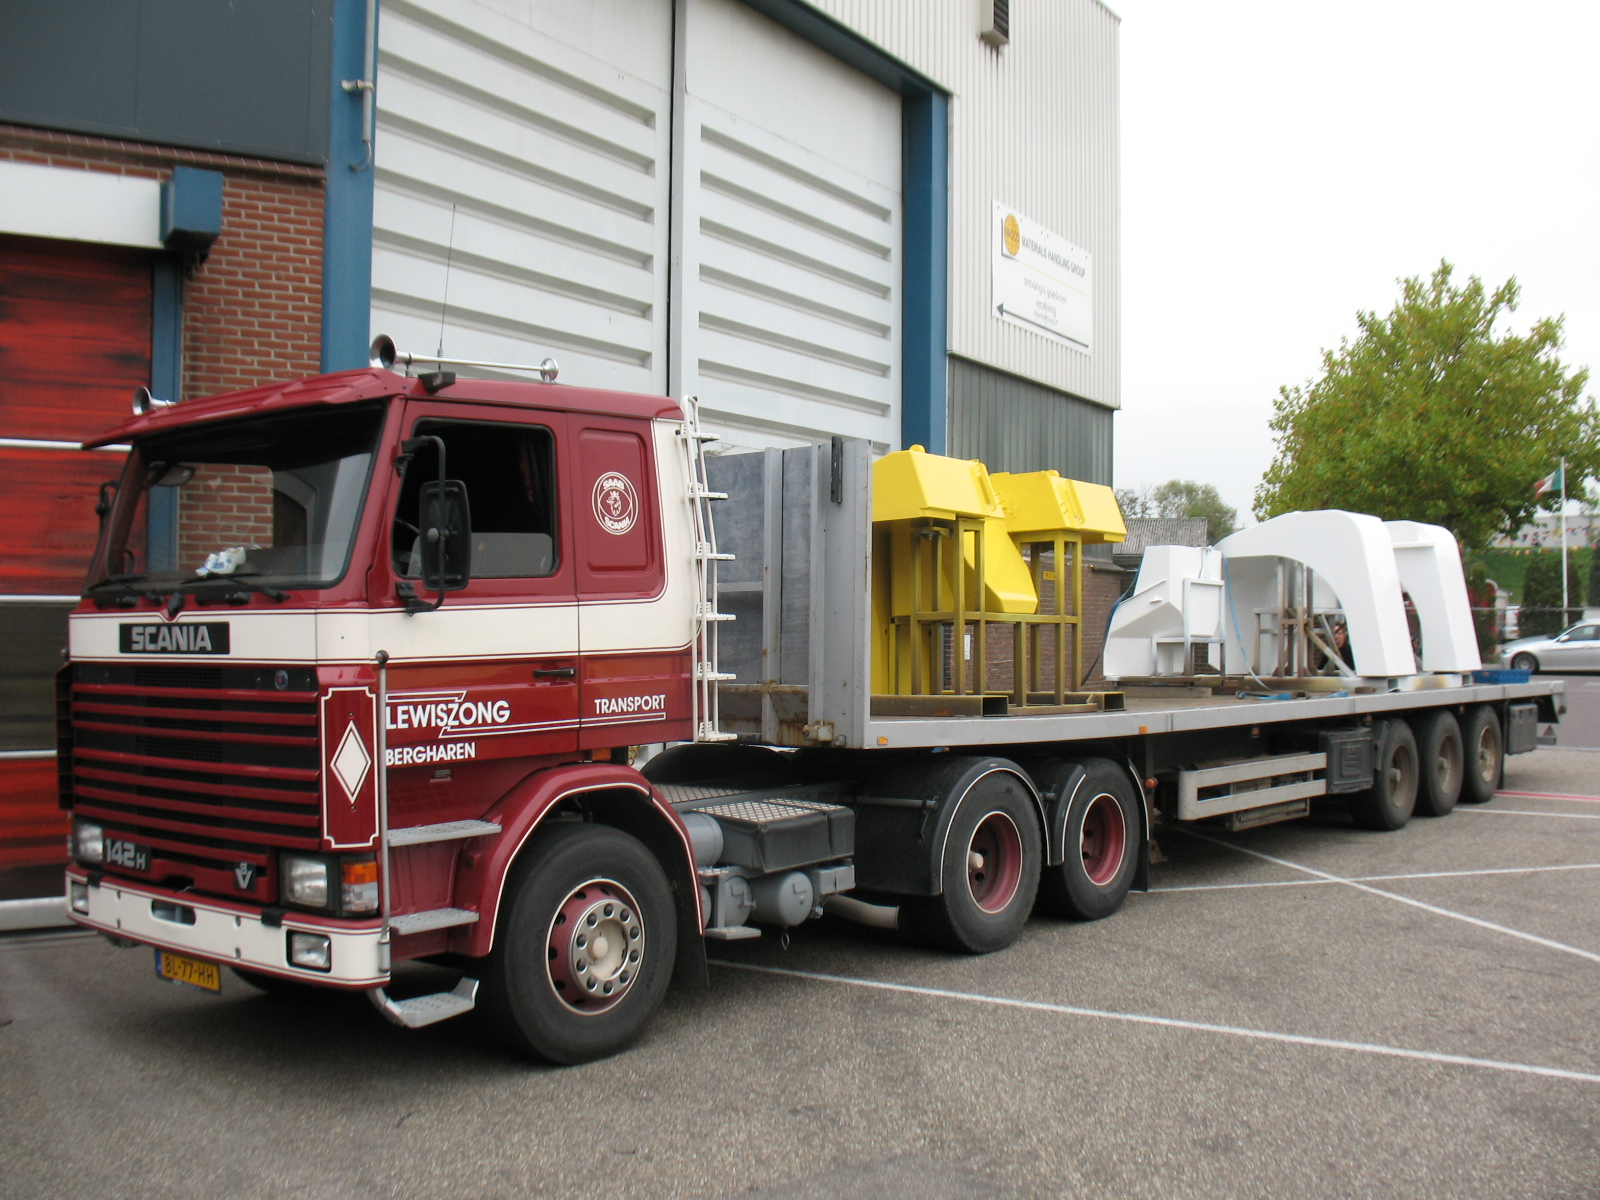 Scania 142 Lewiszong (3).JPG Picture